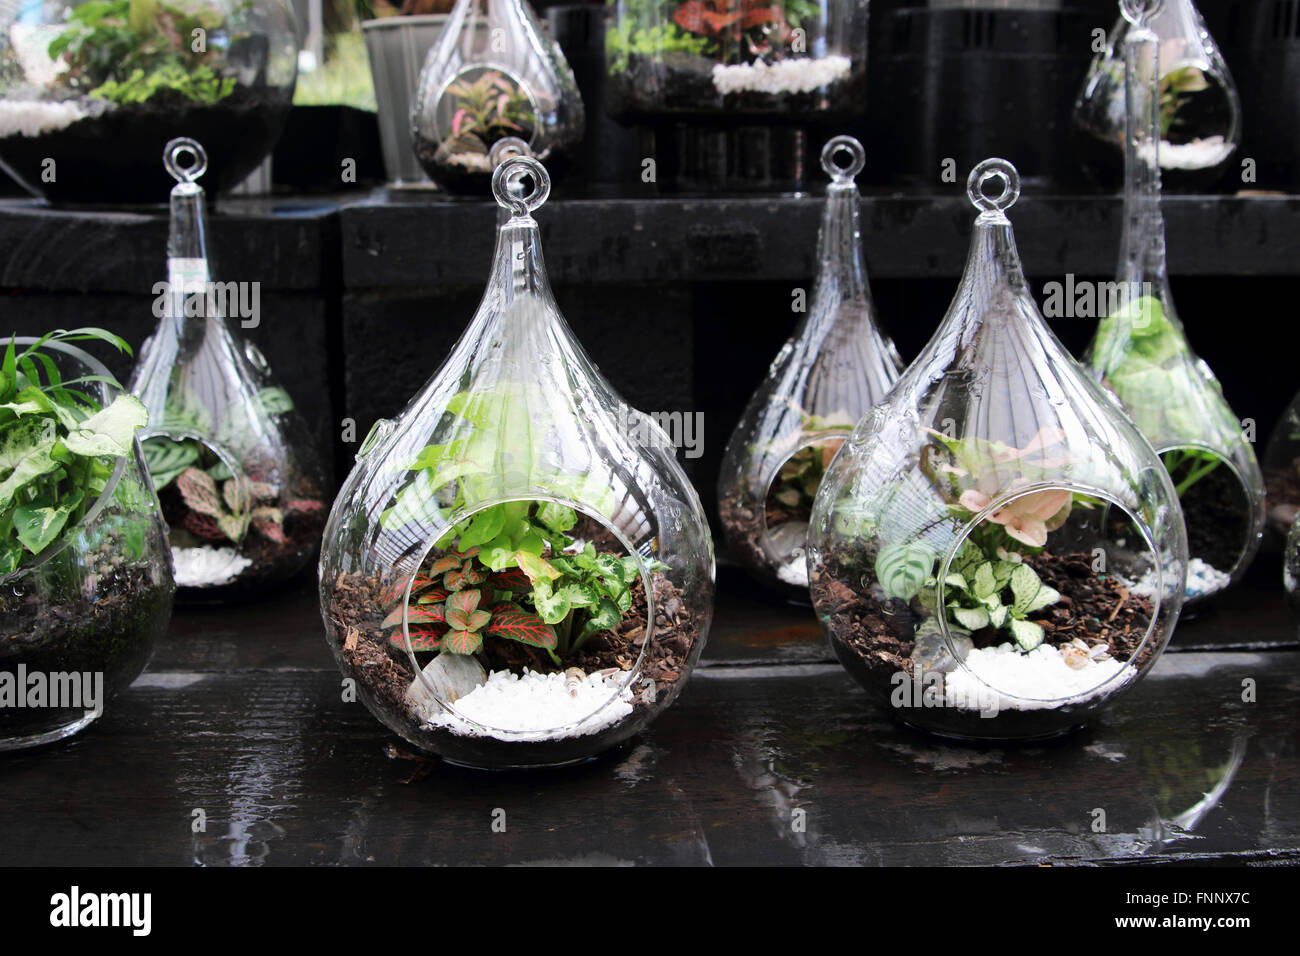 Inside Plants Terrariums With Plants Inside Glass Jar Stock Photo